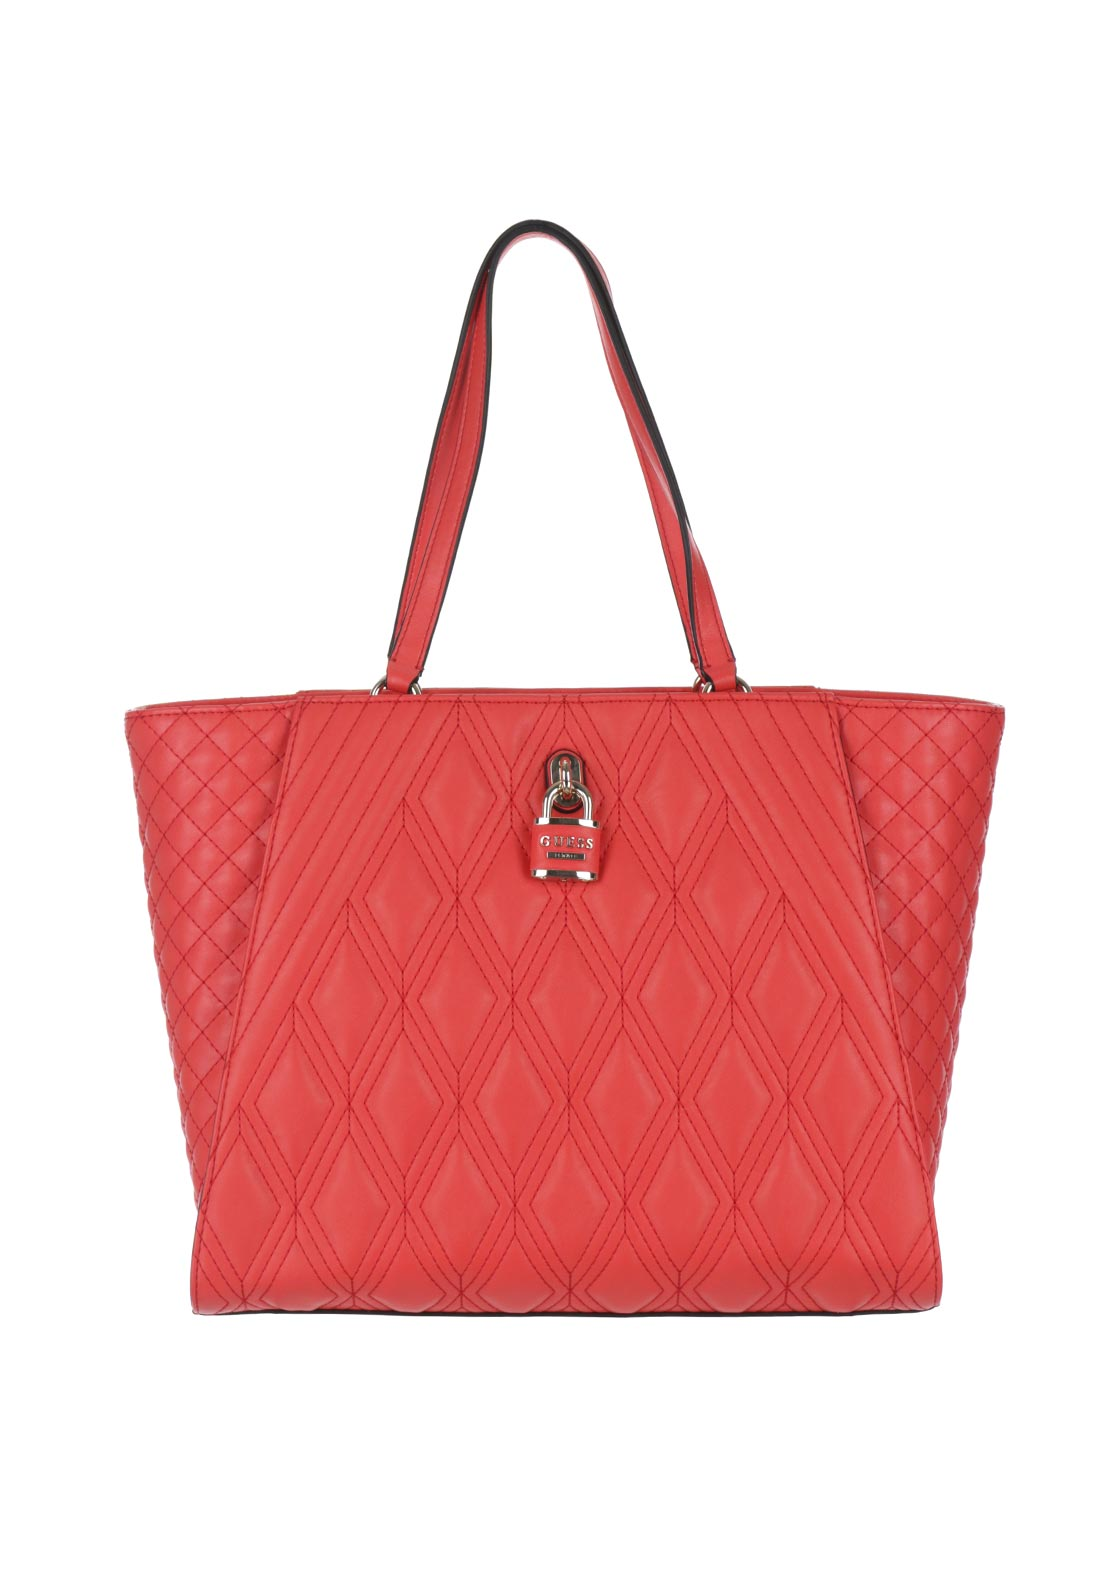 Guess Shea Quilted Locket Shopper Tote Bag, Tomato Red